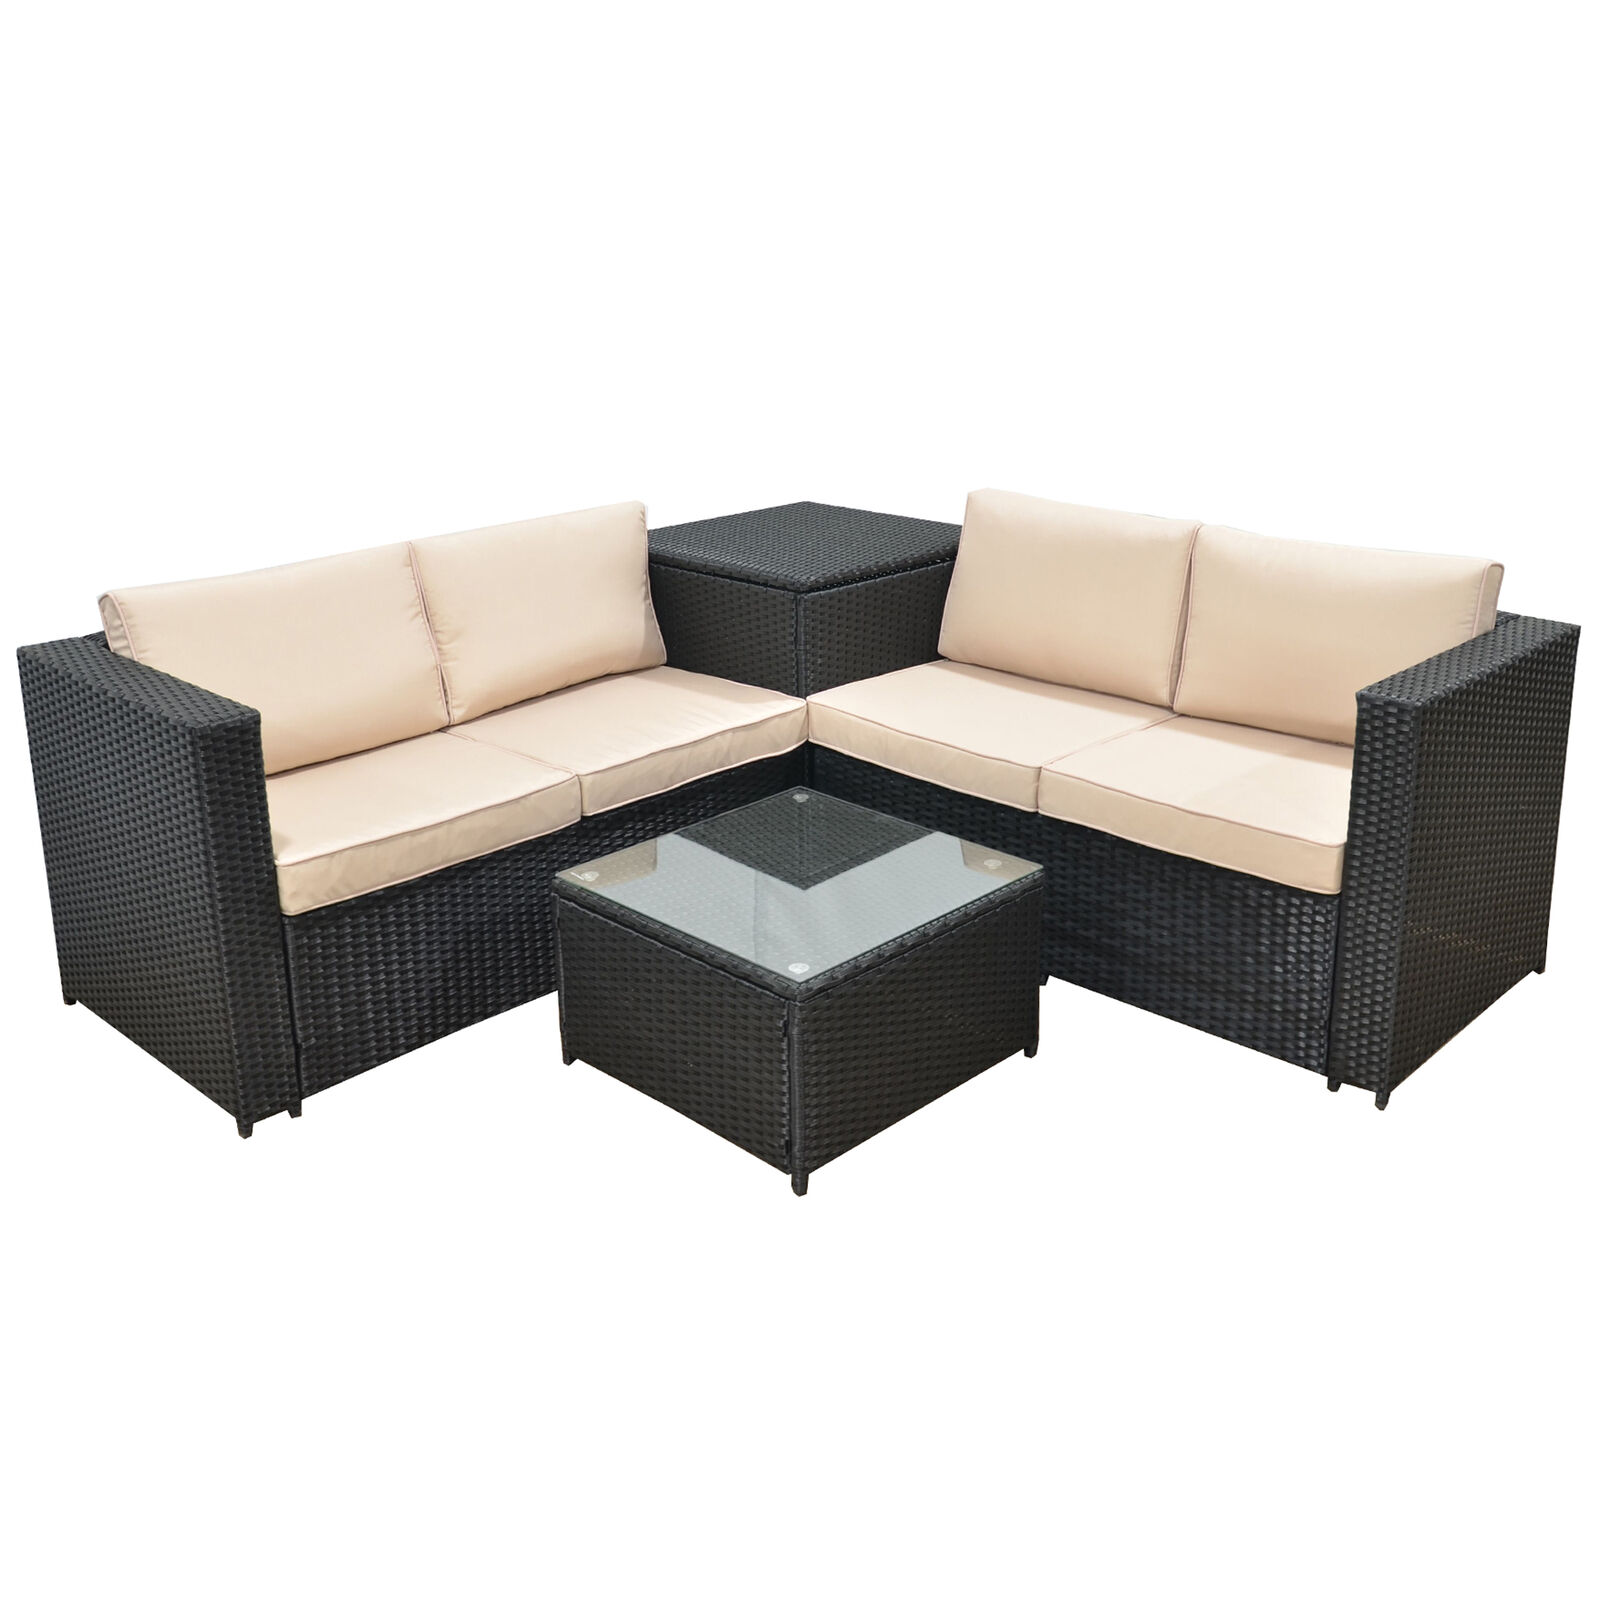 jalano poly rattan lounge set gartenm bel gartengarnitur anthrazit eur 356 03 picclick it. Black Bedroom Furniture Sets. Home Design Ideas